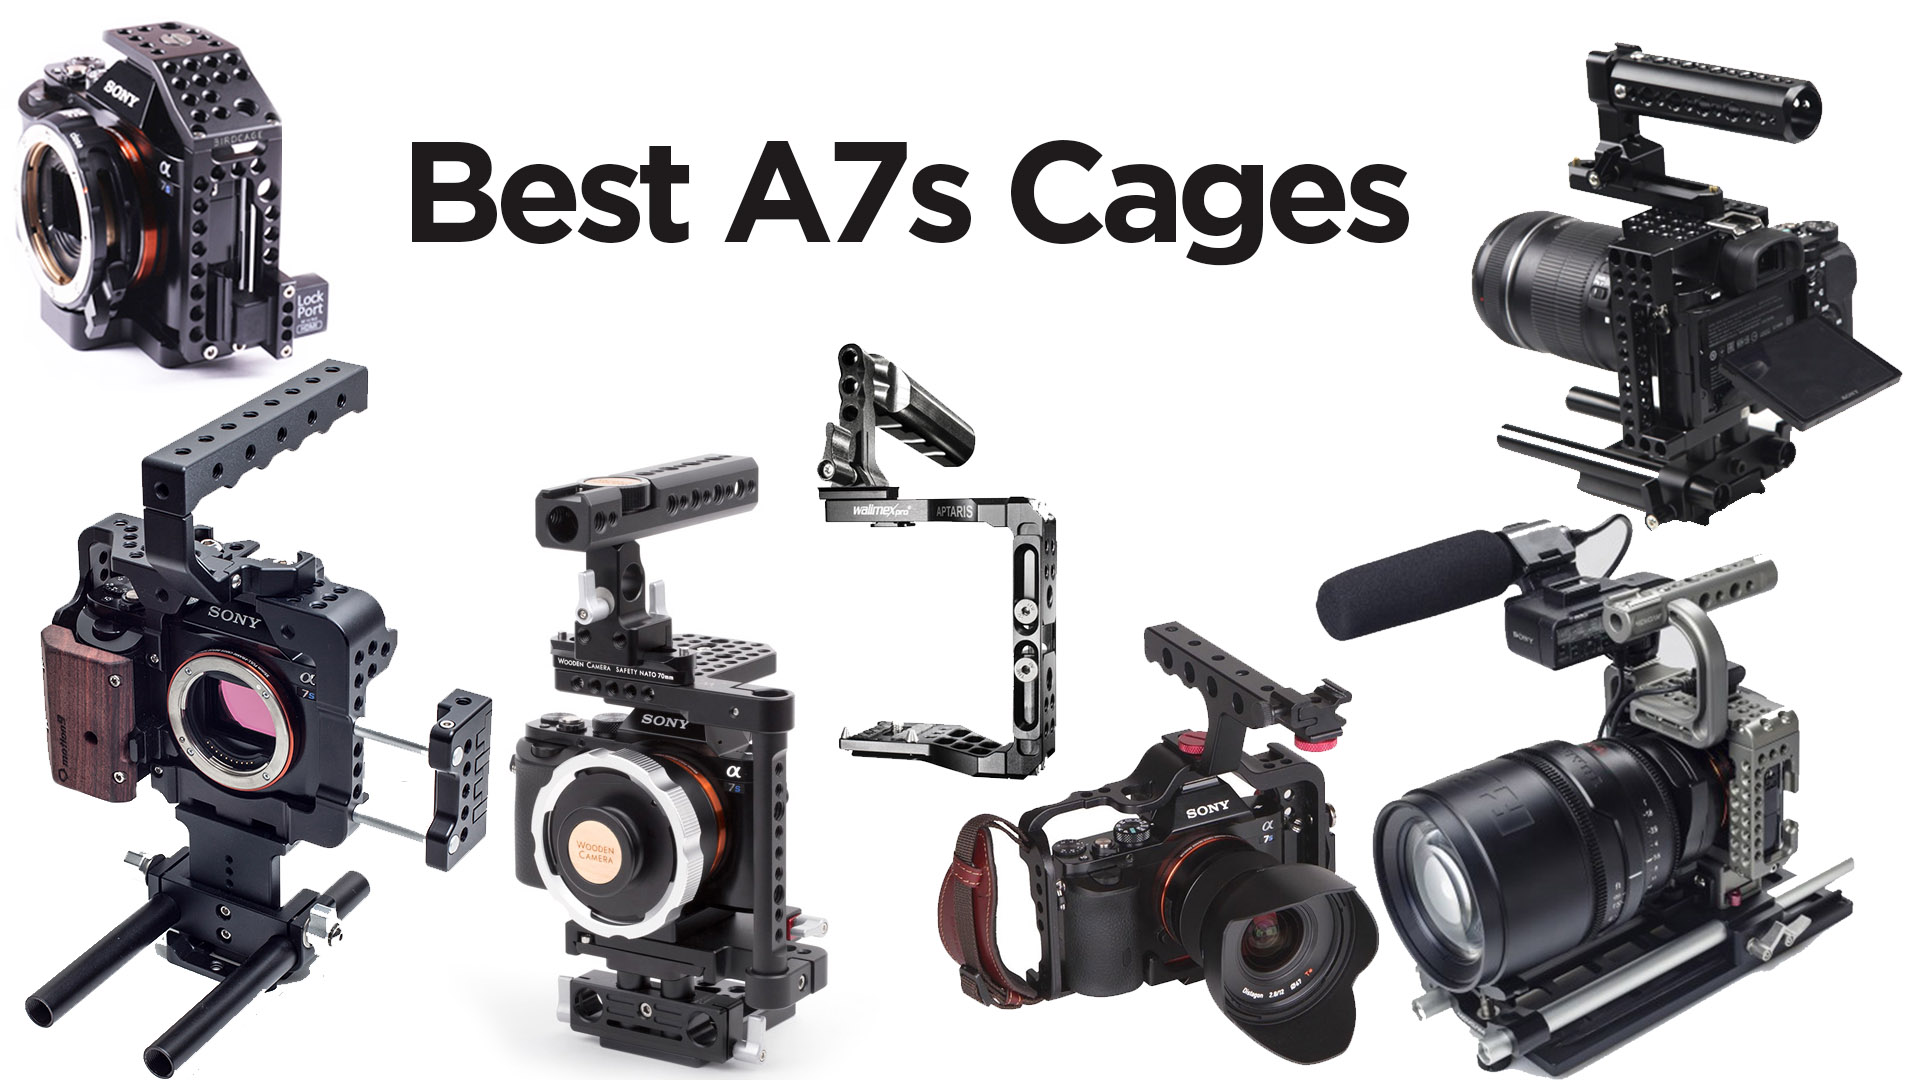 7 Great Sony A7s Cage Options